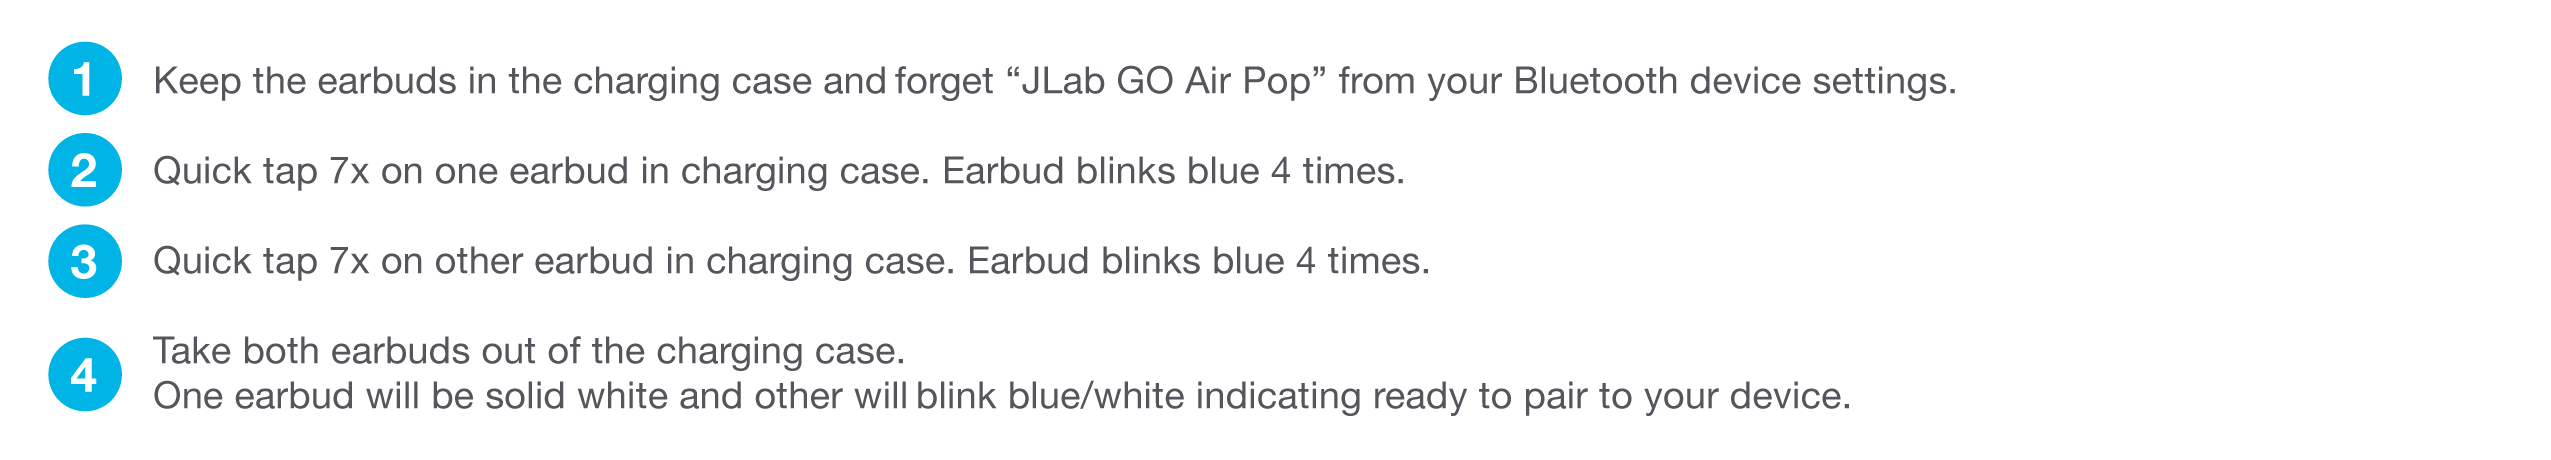 How to manually reset your GO Air Pop